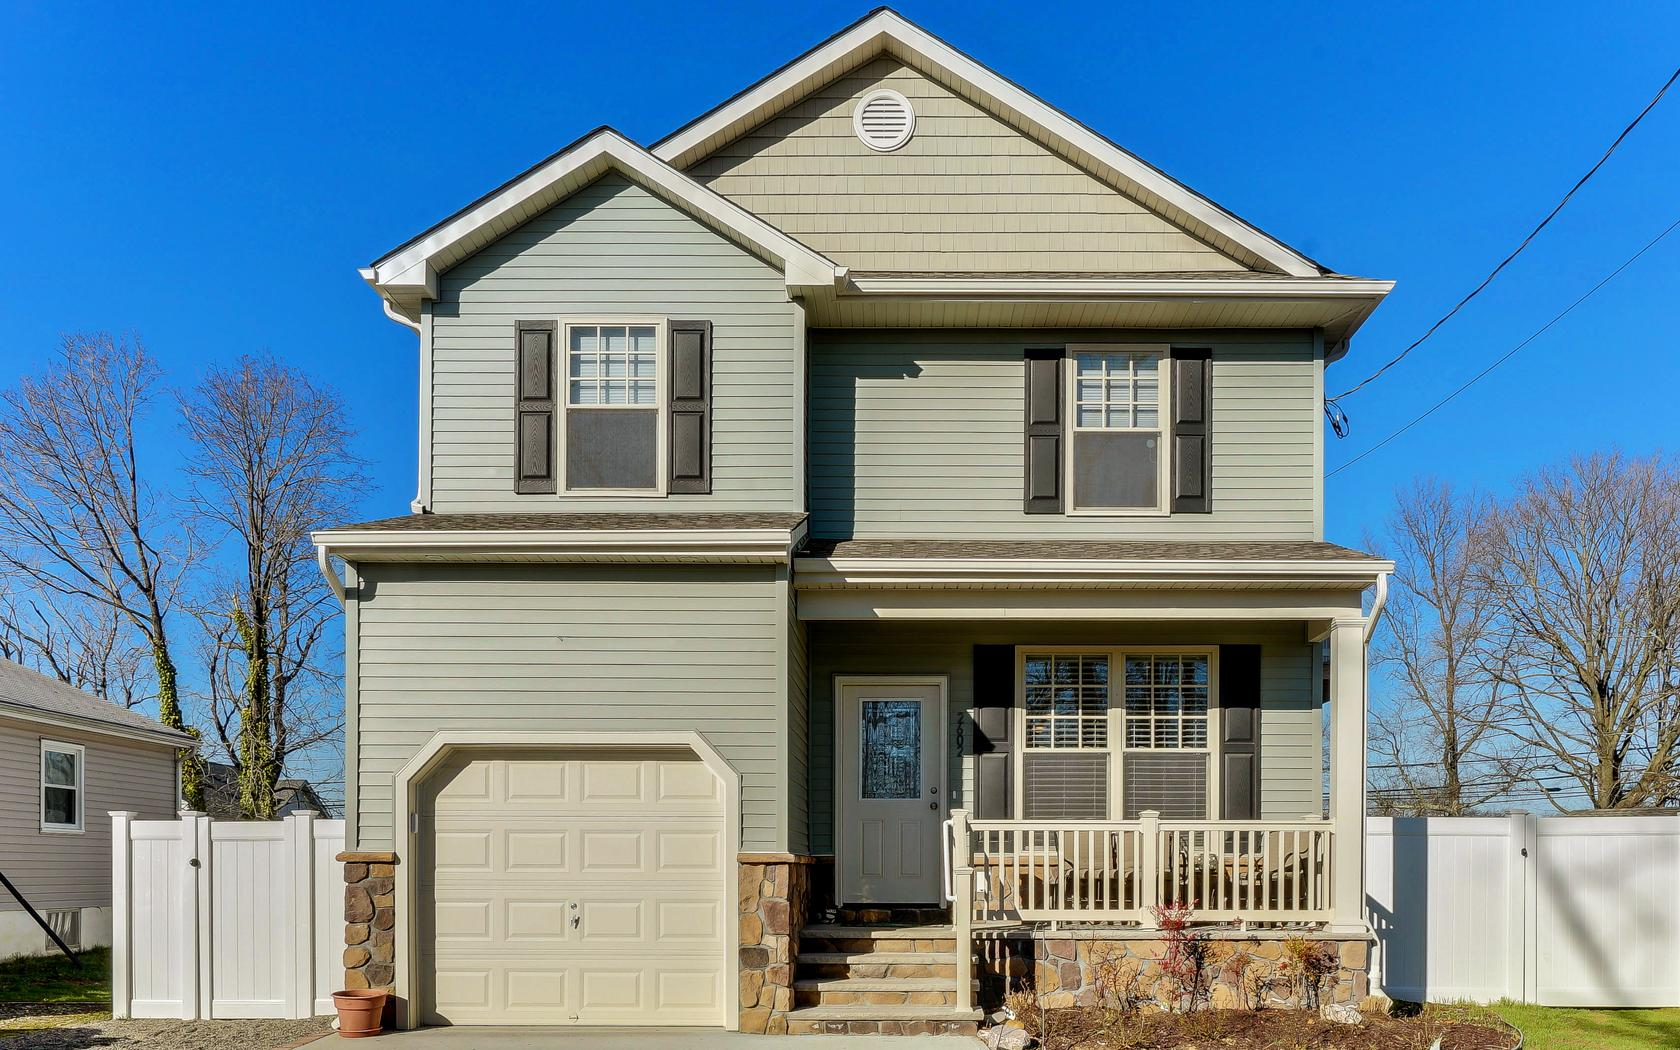 Single Family Home for Sale at Stunning 2016 Construction 2602 Garfield St Wall, New Jersey, 07719 United States